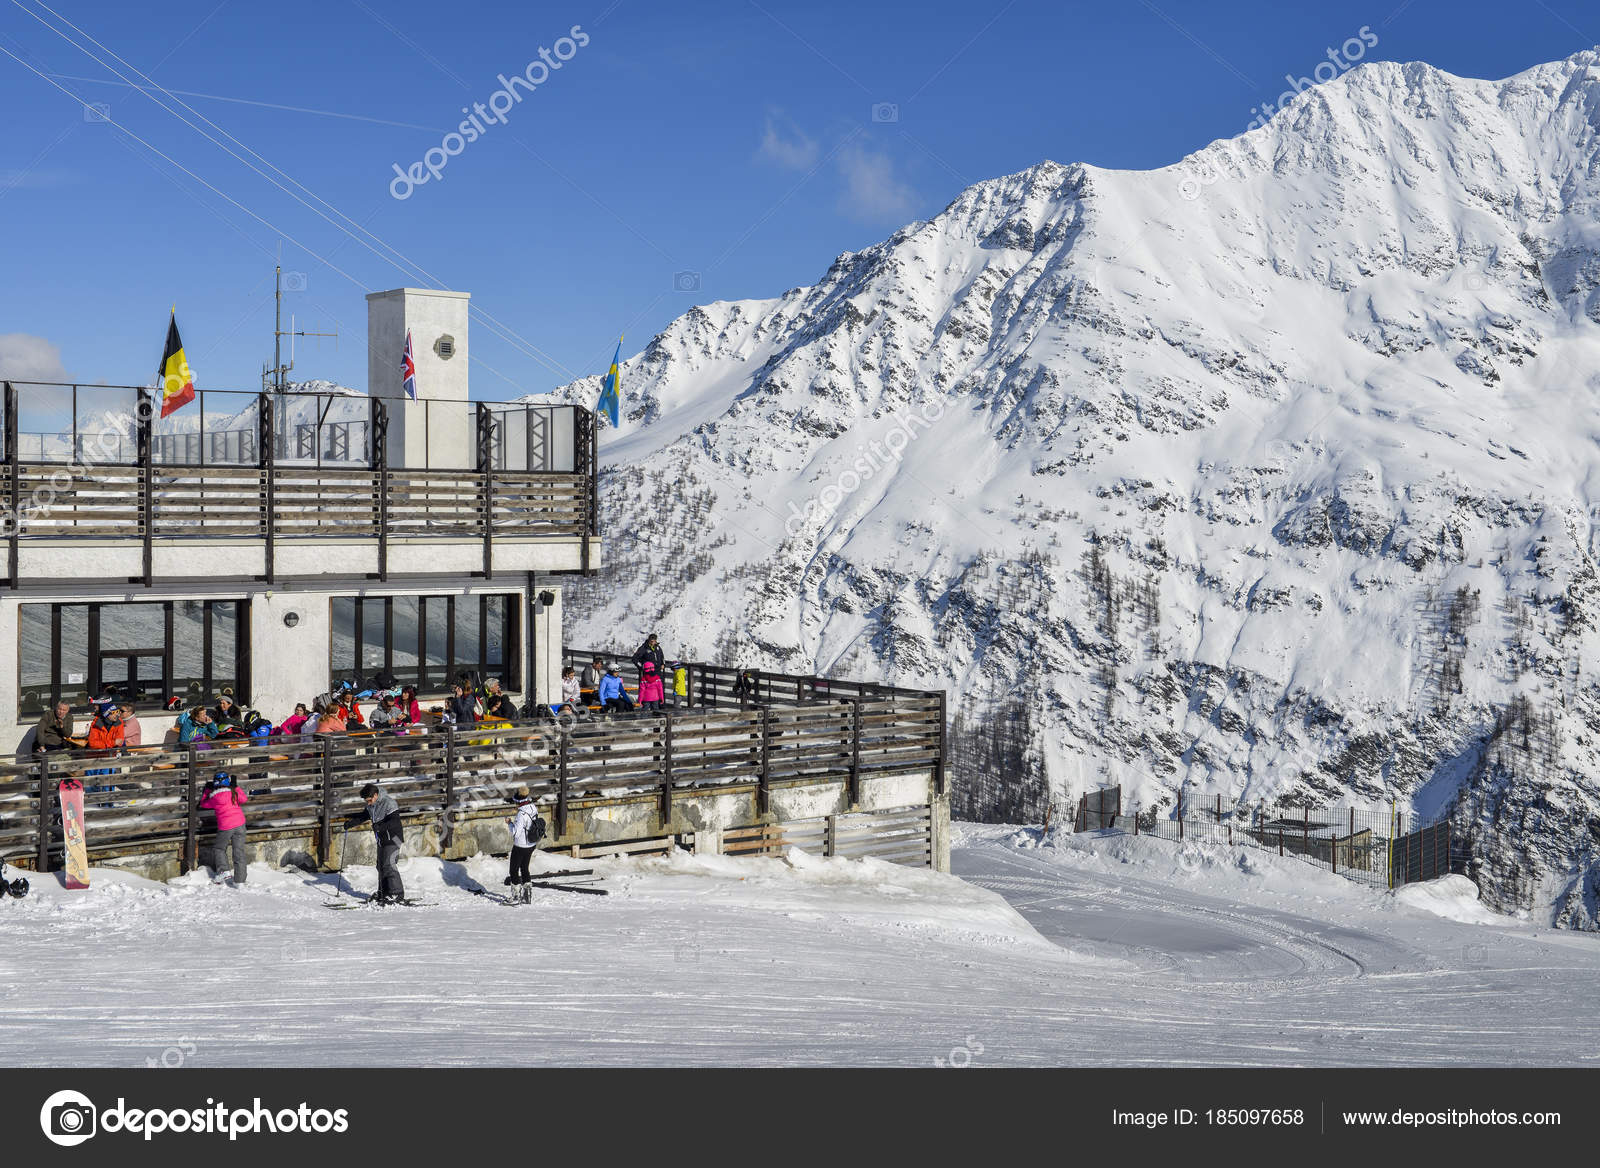 skiers and snowboarders with their gear at la thuile ski resort in